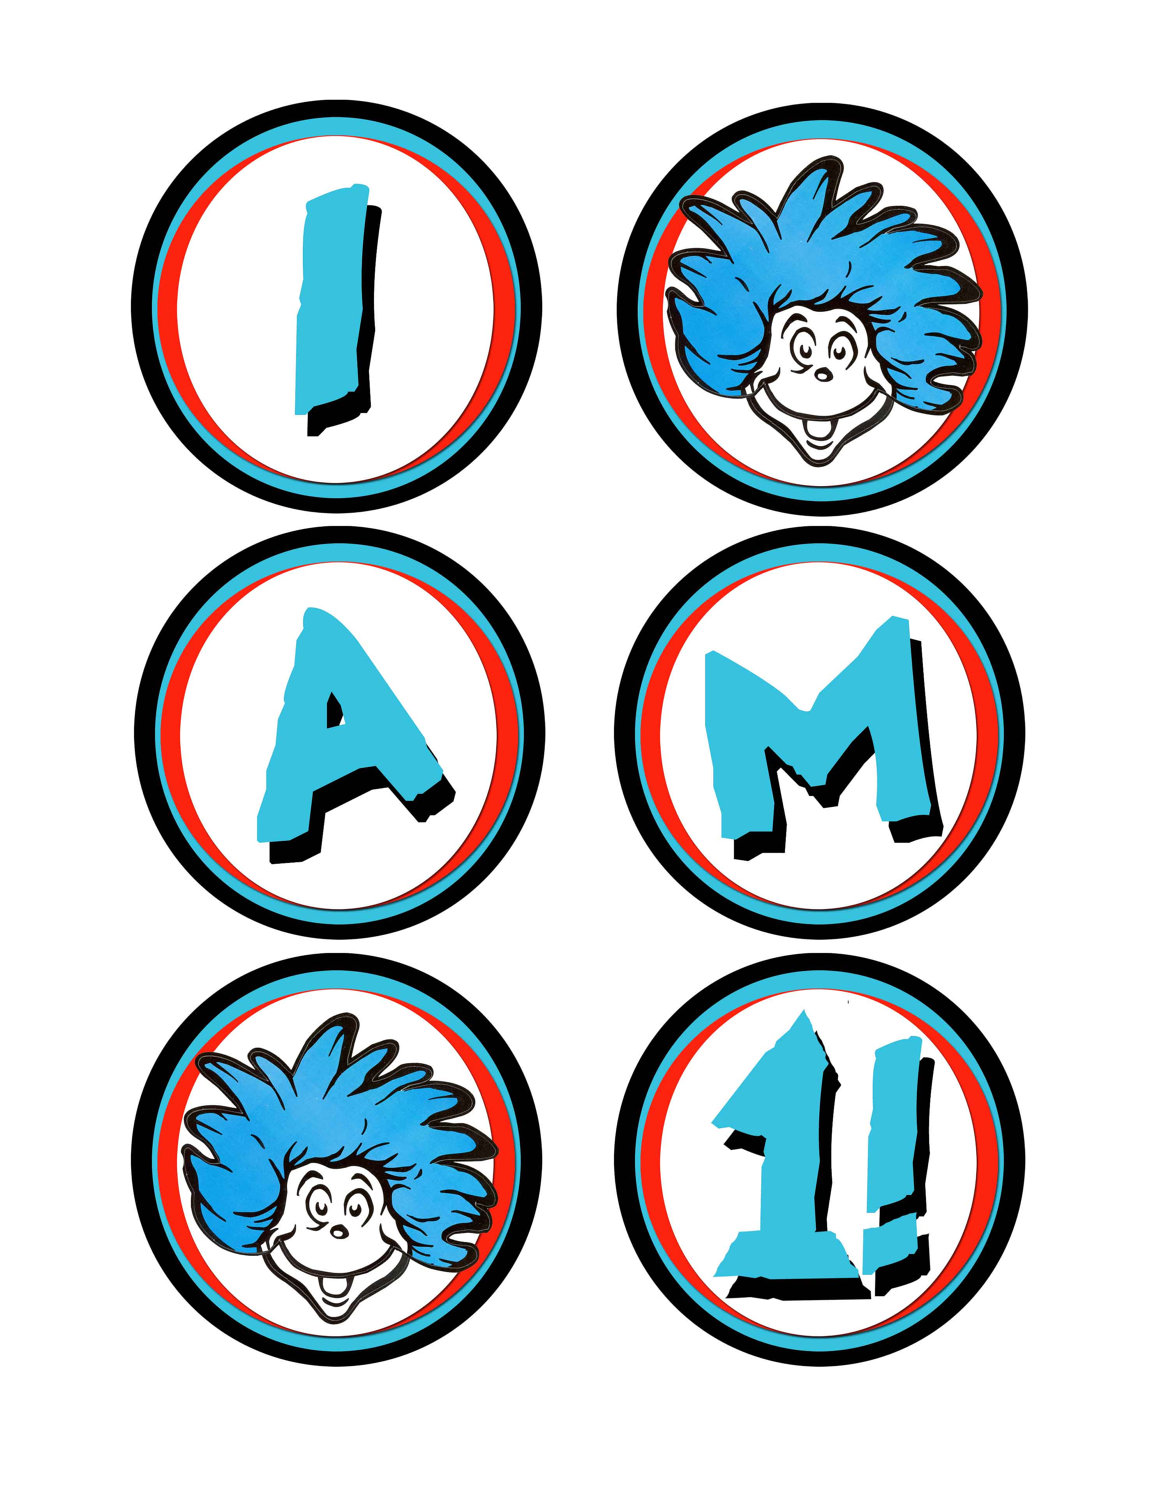 Dr Seuss Birthday Clip Art Characters free image.